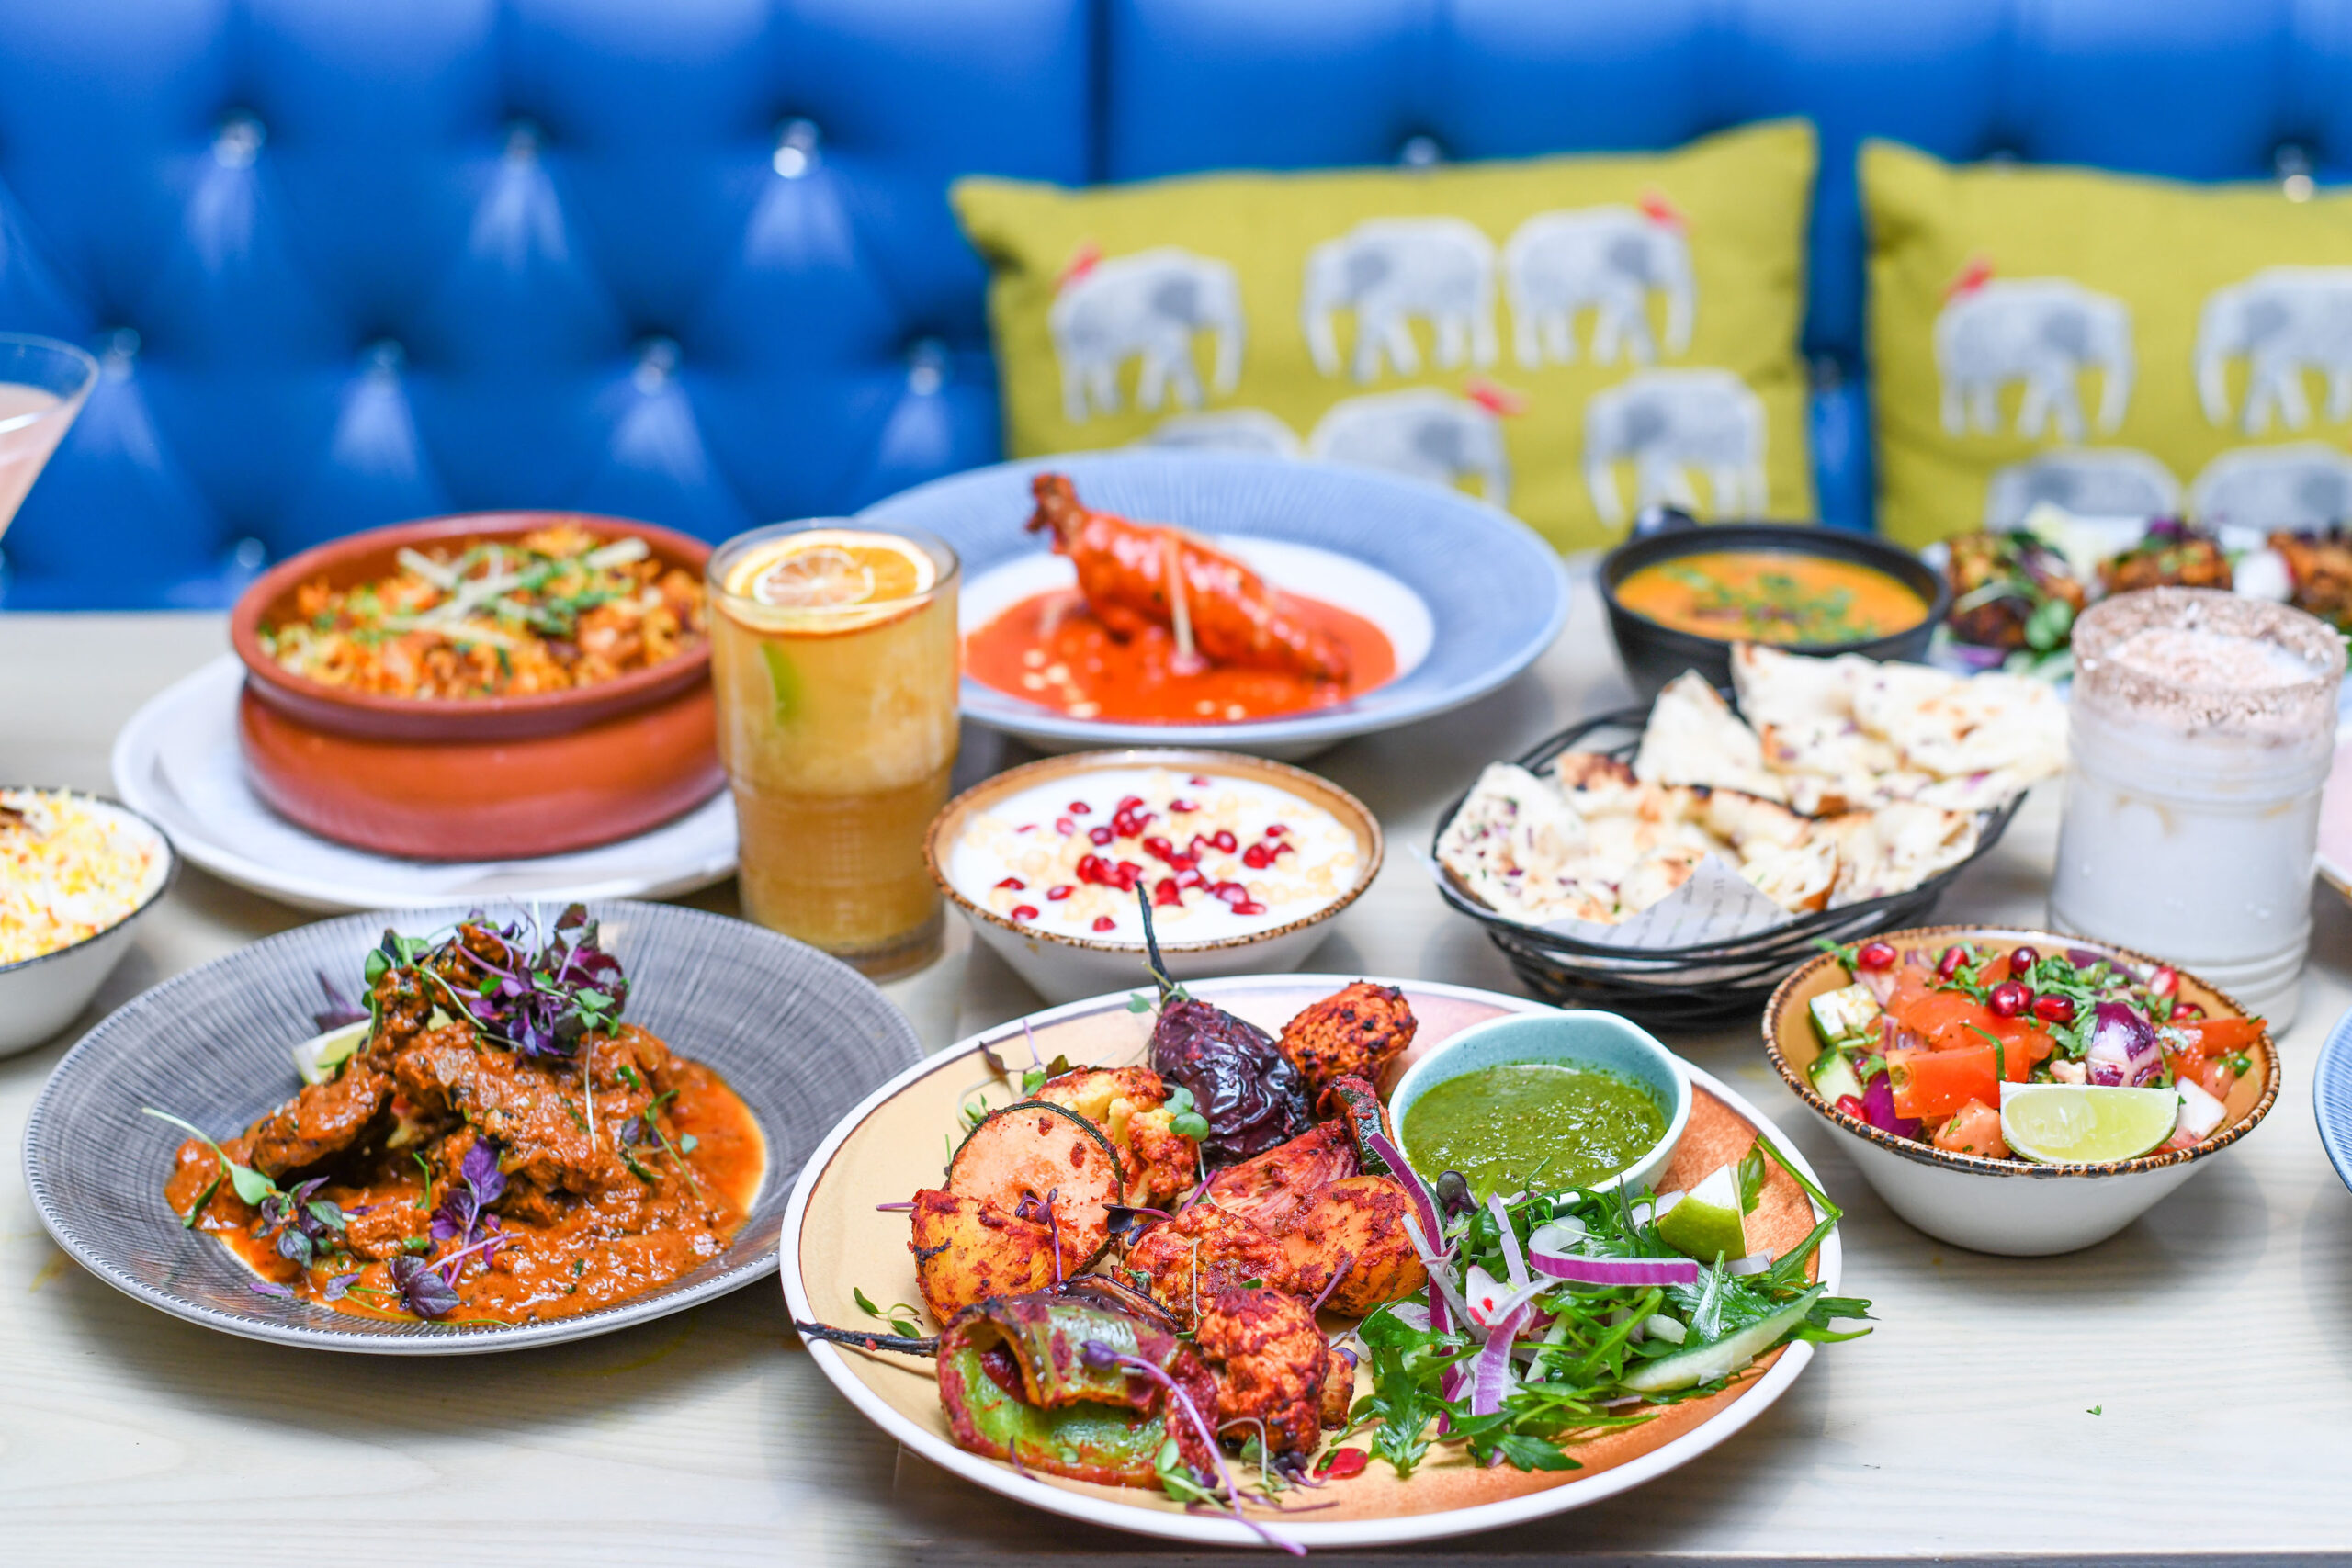 National Curry Week in London - What to Eat and Where: Award Winning Curry at Namaaste Kitchen, Camden